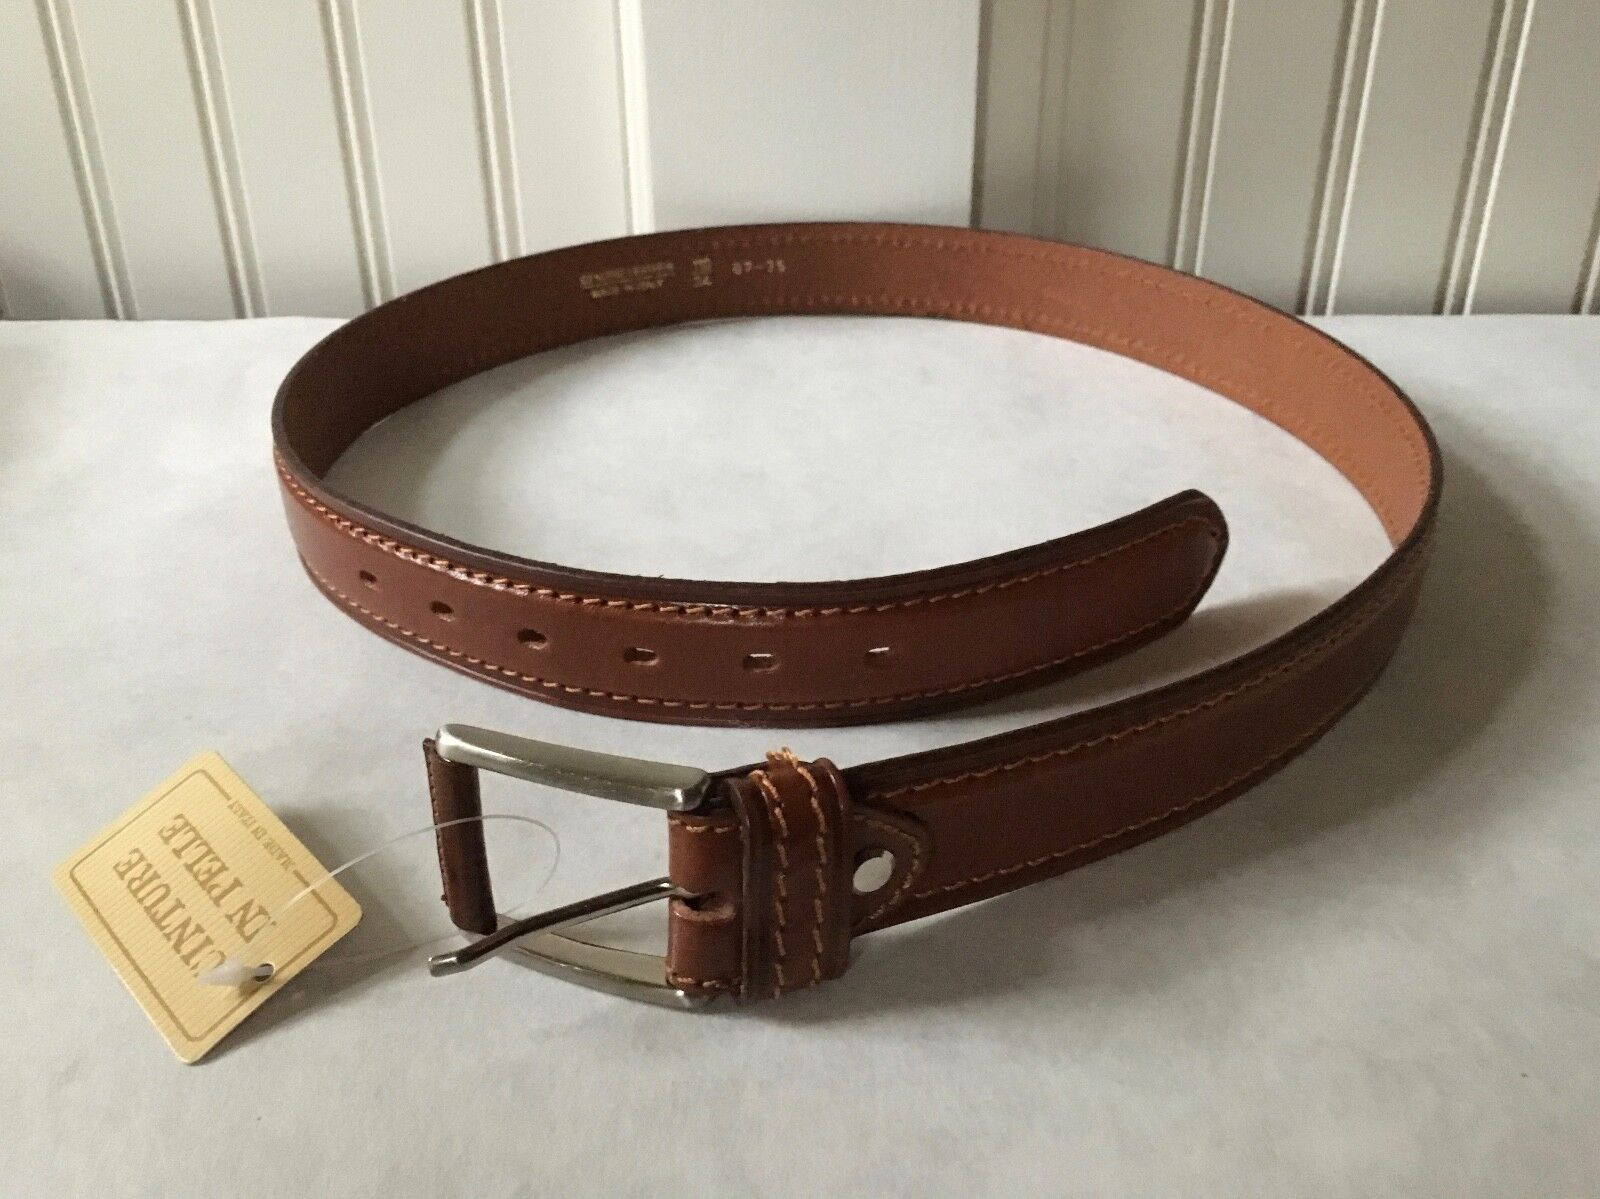 Genuine Italian Leather Brown Belt Purchased in Italy, Size 34